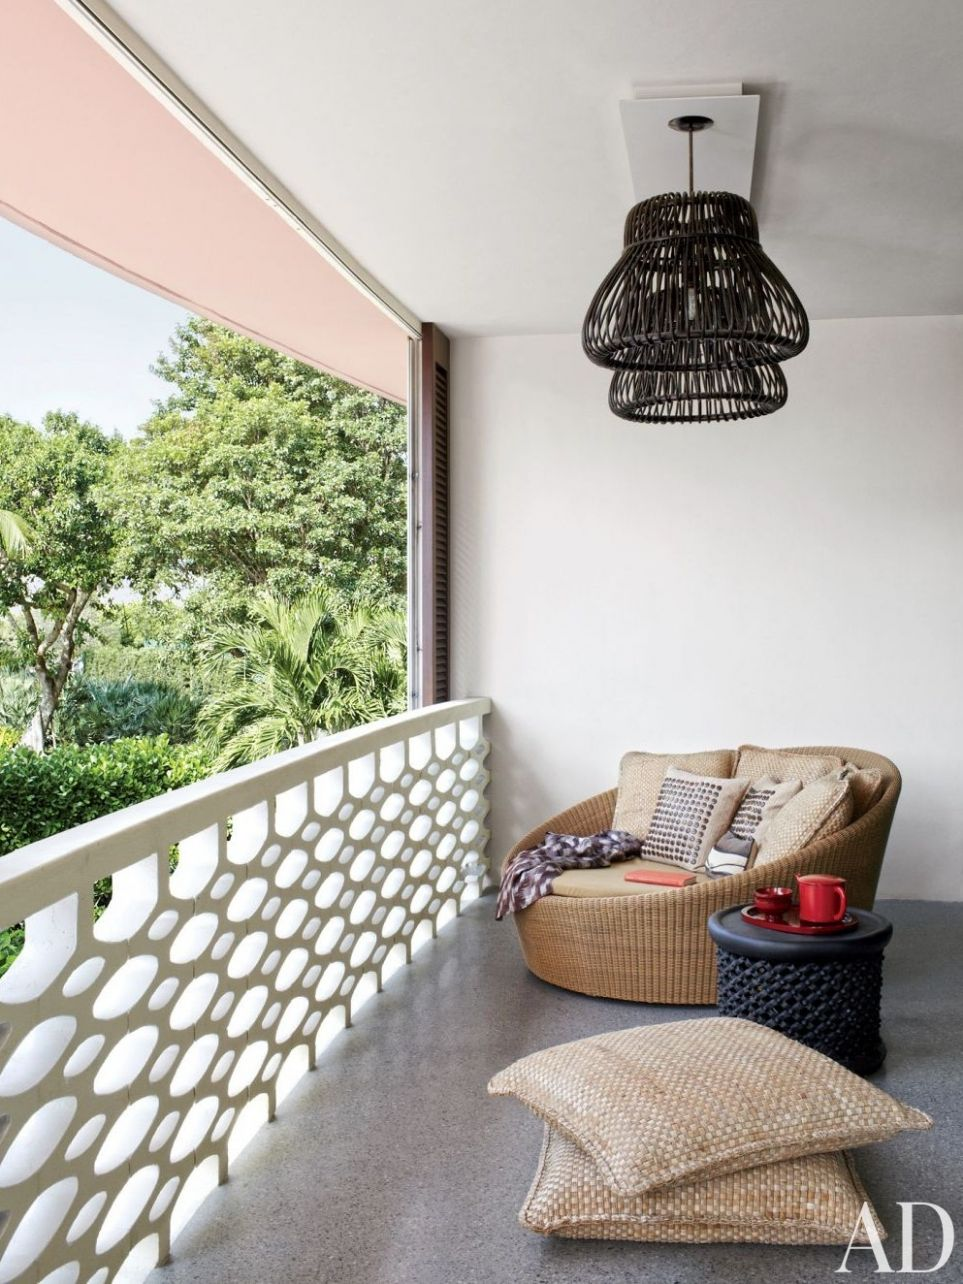 12 Cozy Balcony Ideas and Decor Inspiration | Architectural Digest - balcony table ideas